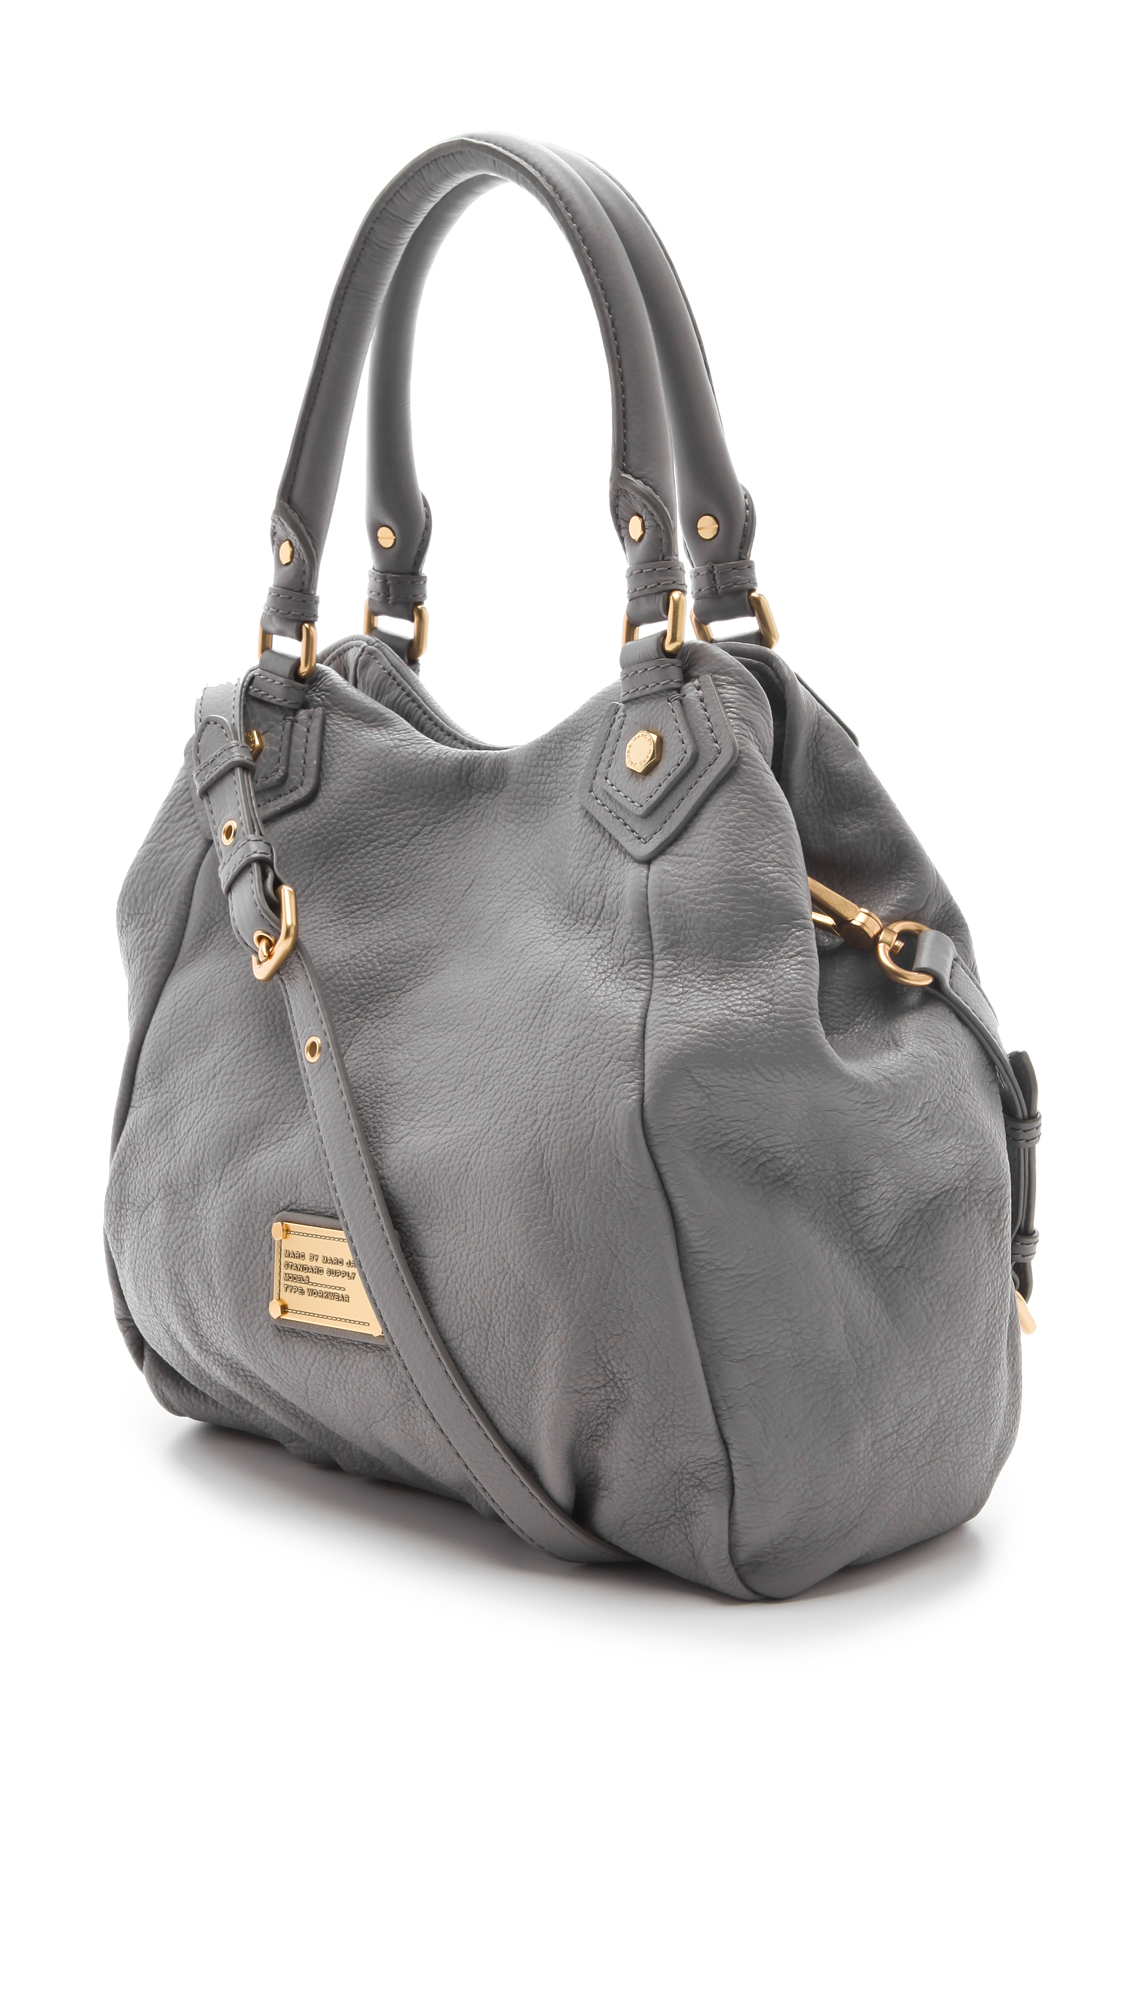 7367aedf7f2d Marc by Marc Jacobs Classic Q Fran Bag